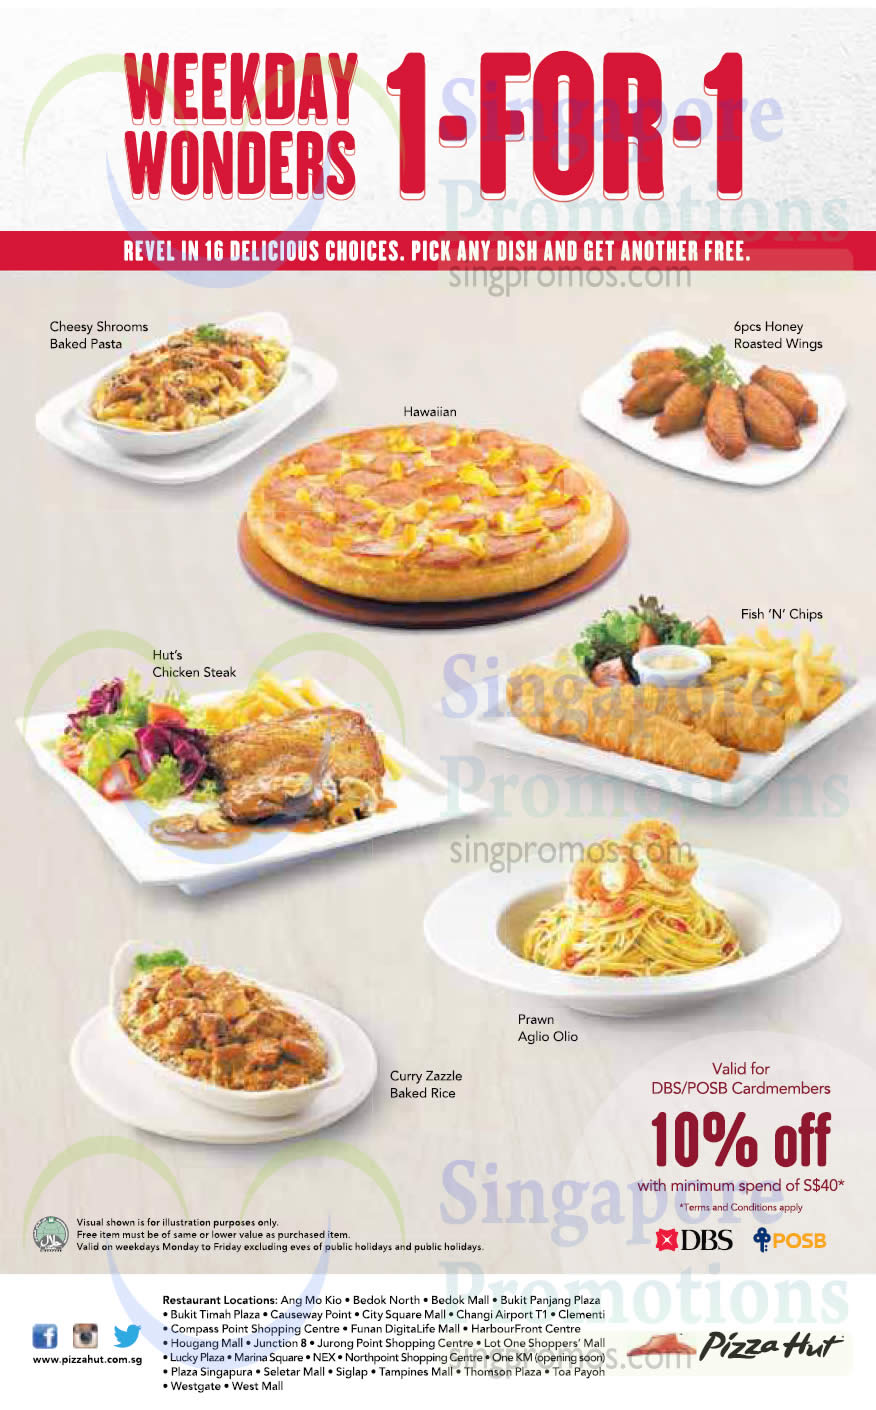 6 Jan 1 For 1 Weekday Wonders, Pizza, Pasta, Fish n Chips. Baked Rice